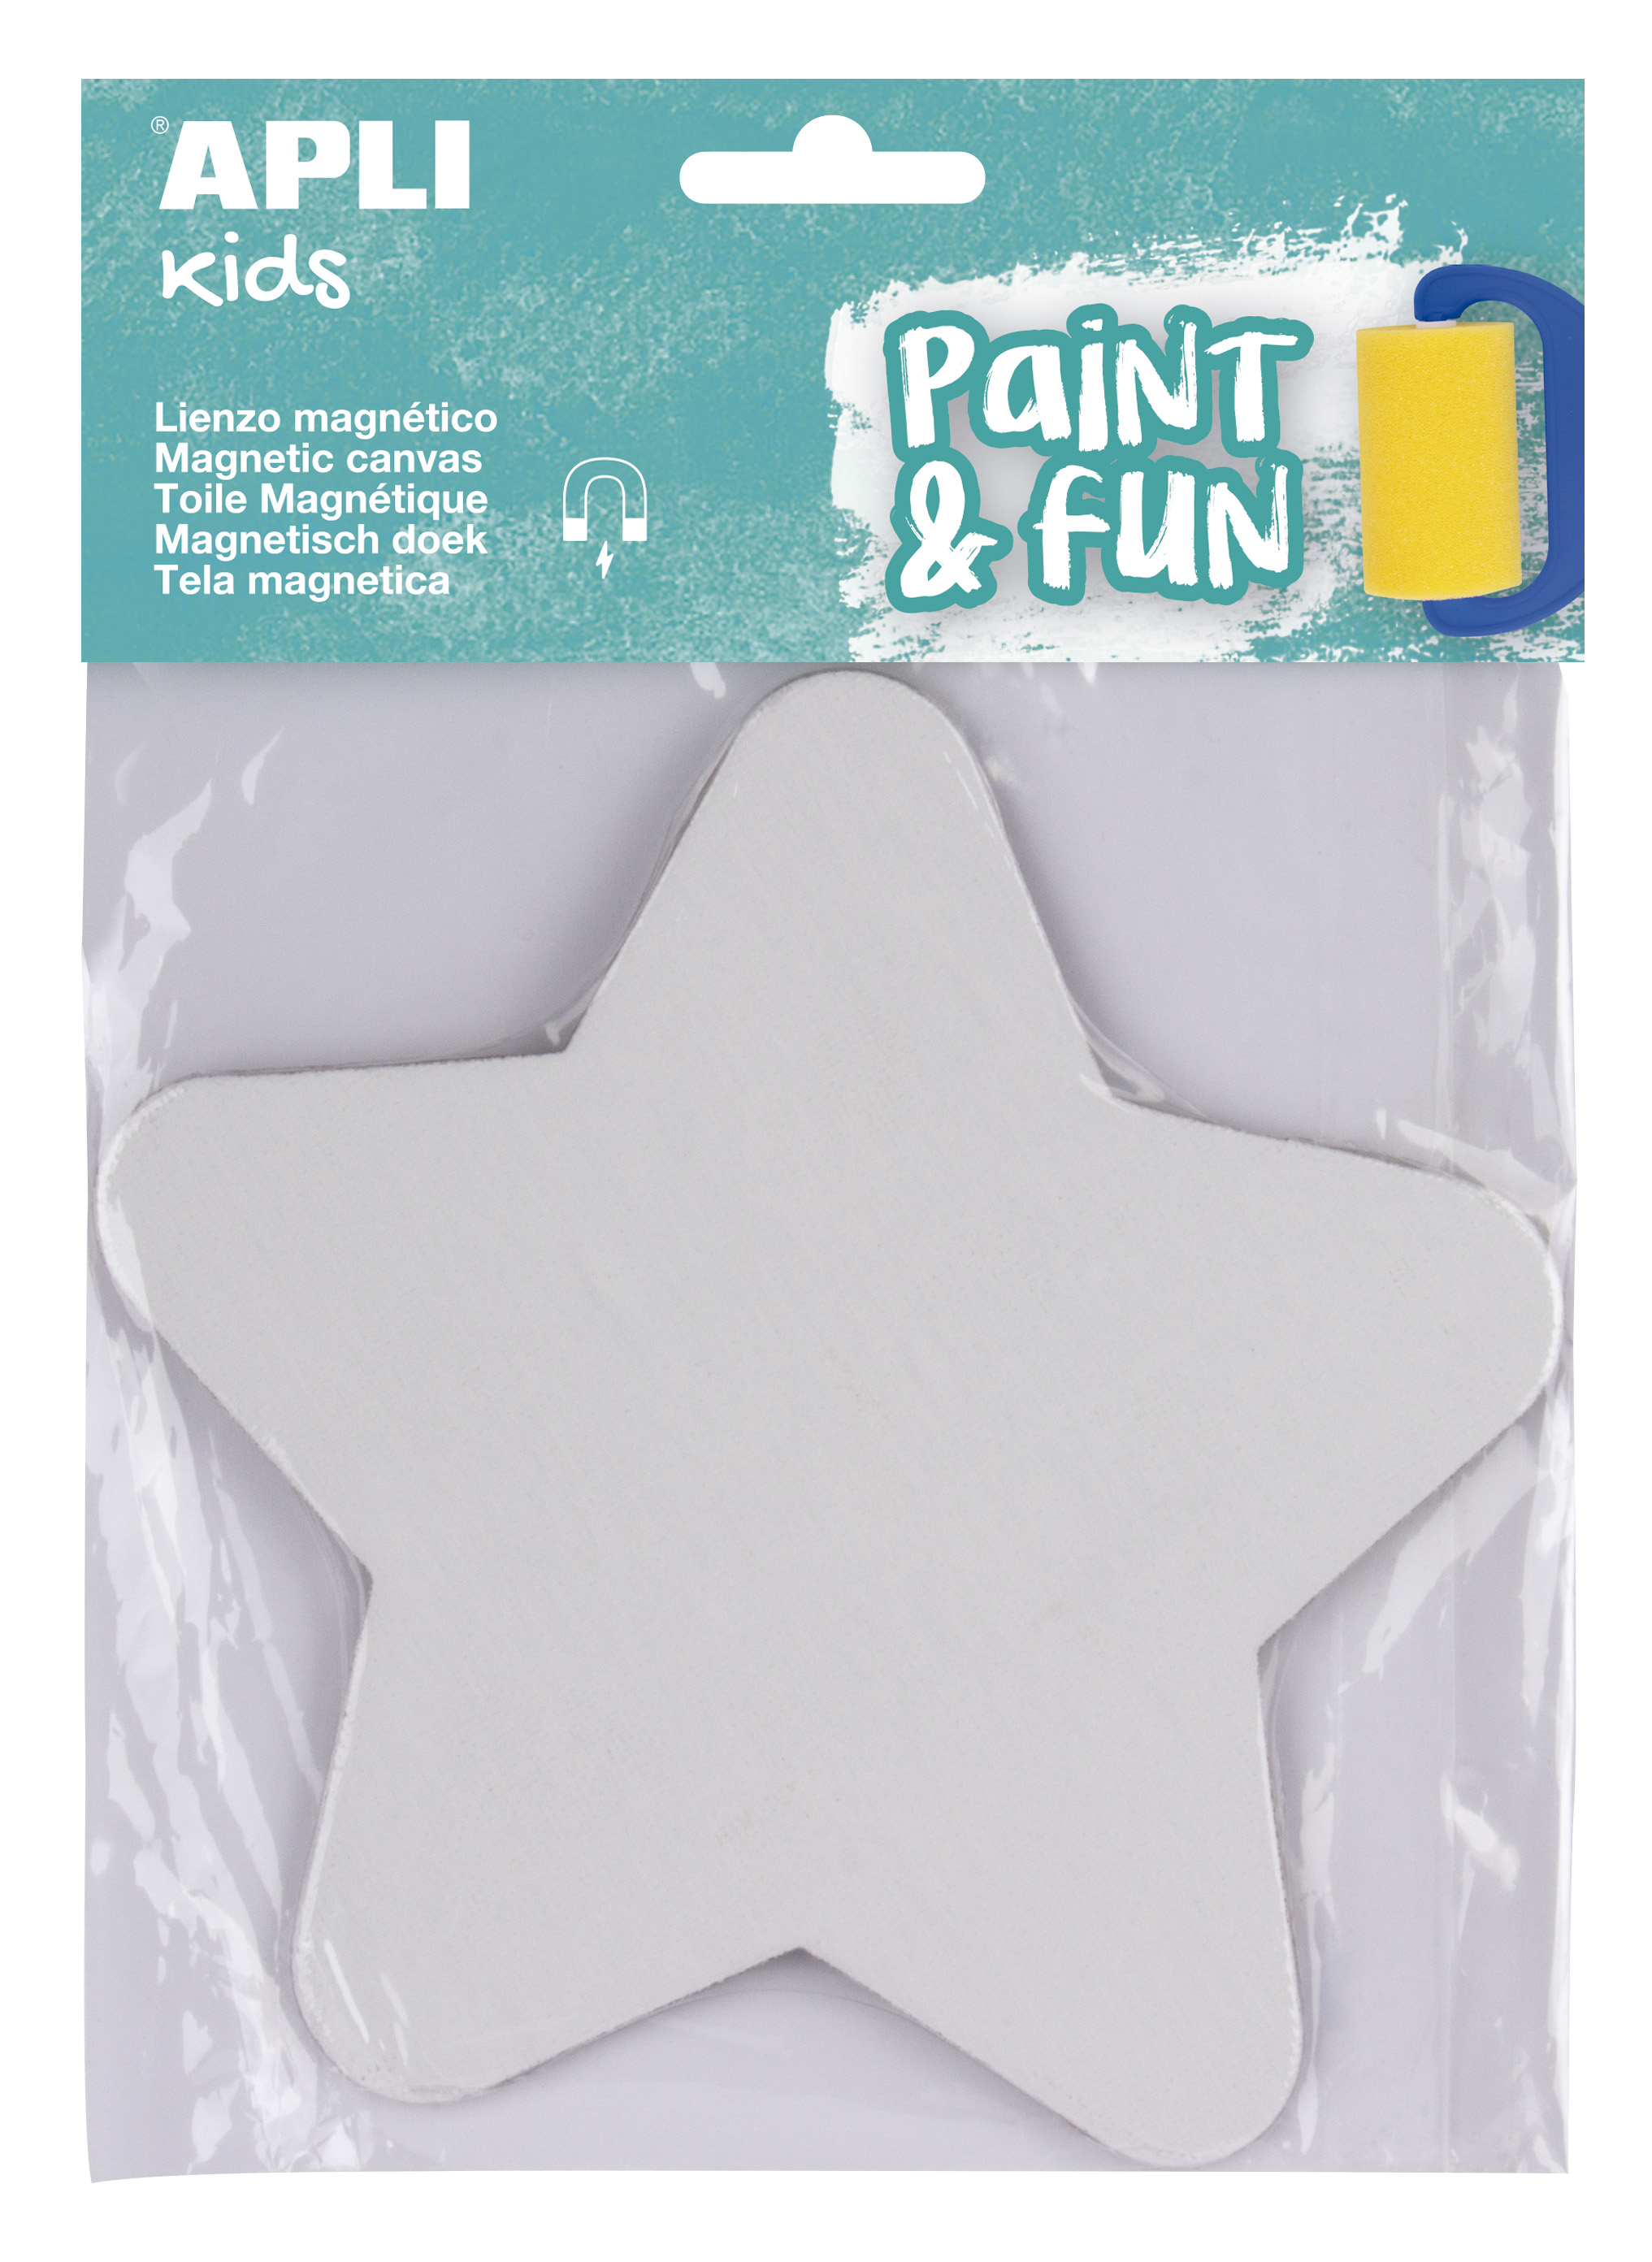 Shape Stamp Sponges Pack 10 Childrens Painting fun and learning Shapes